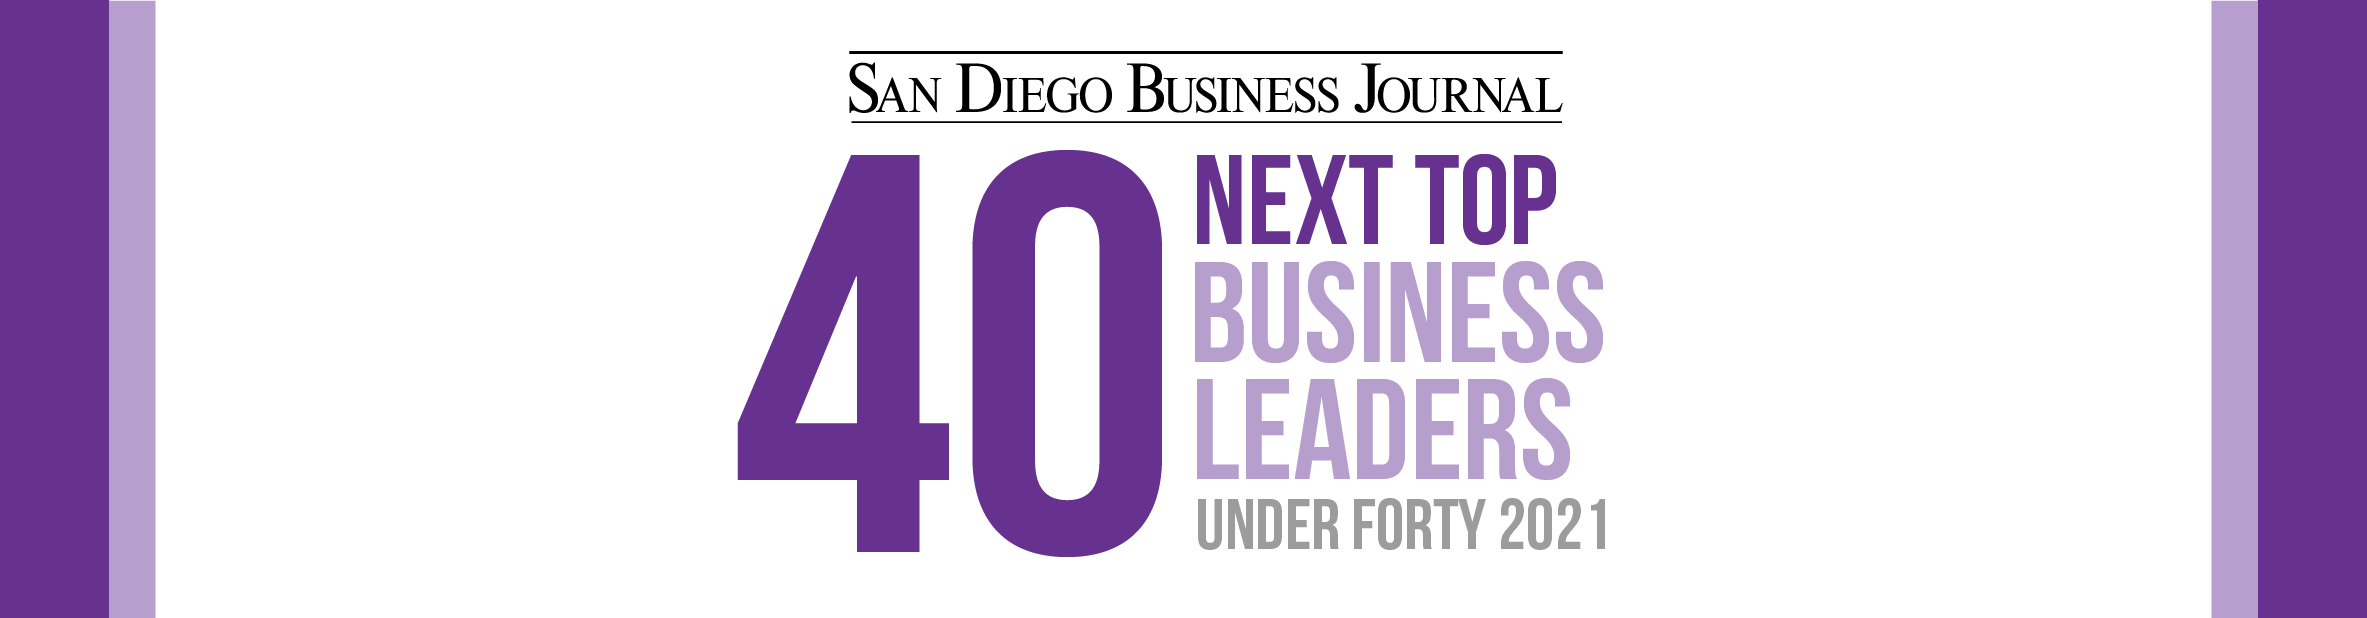 San Diego Business Journal Economics Trends